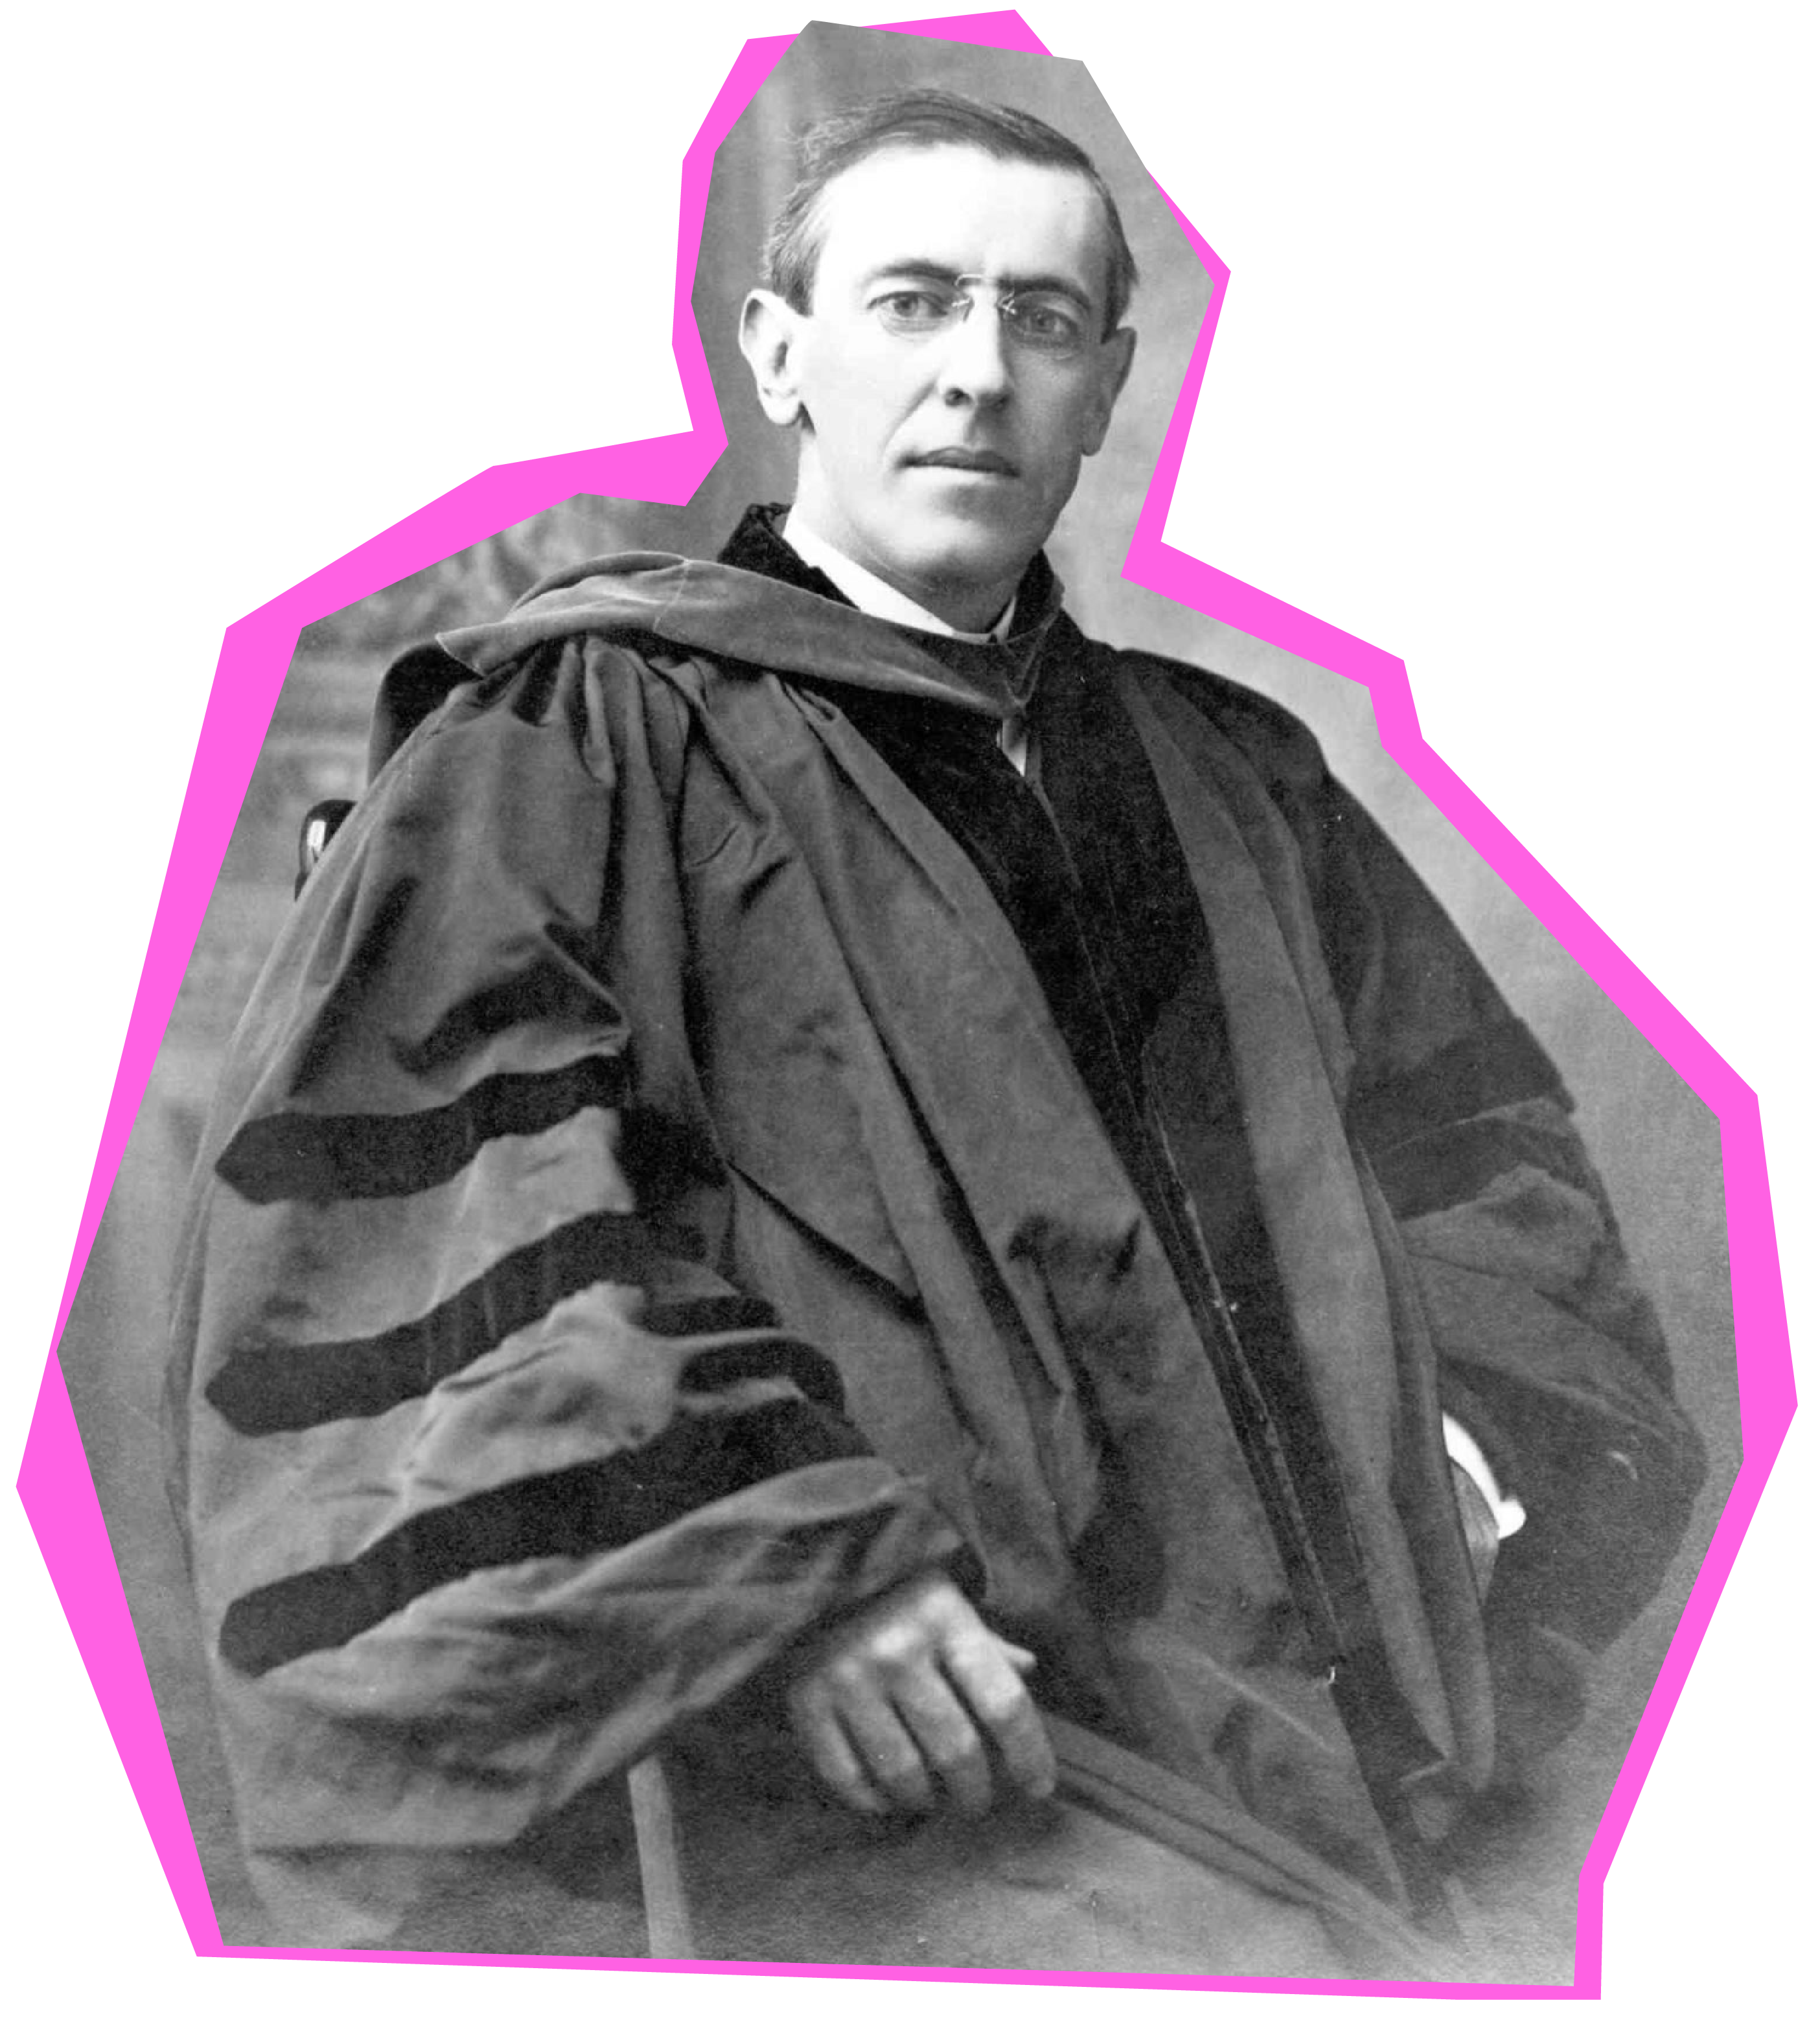 Woodrow Wilson, 13th president of Princeton, in academic robes.